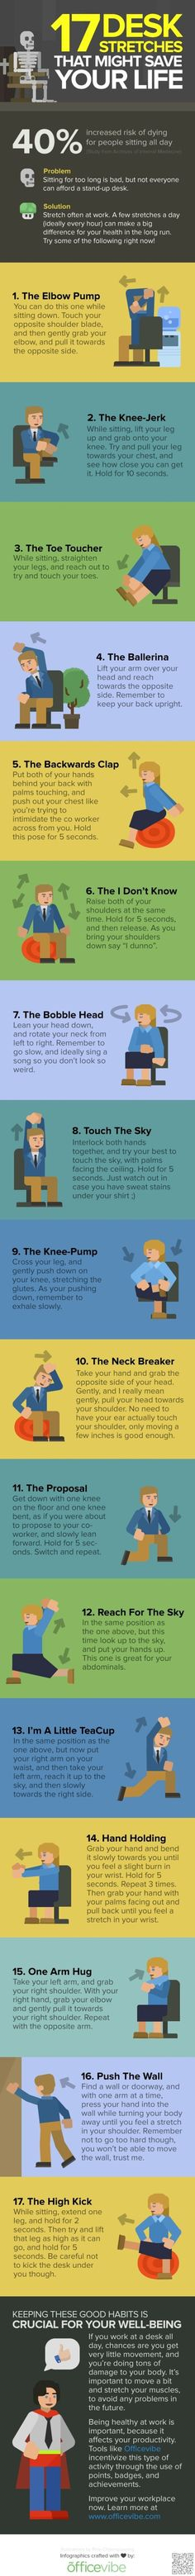 Getting stiff and sore at your office job? Here are some great stretches to do in the office!